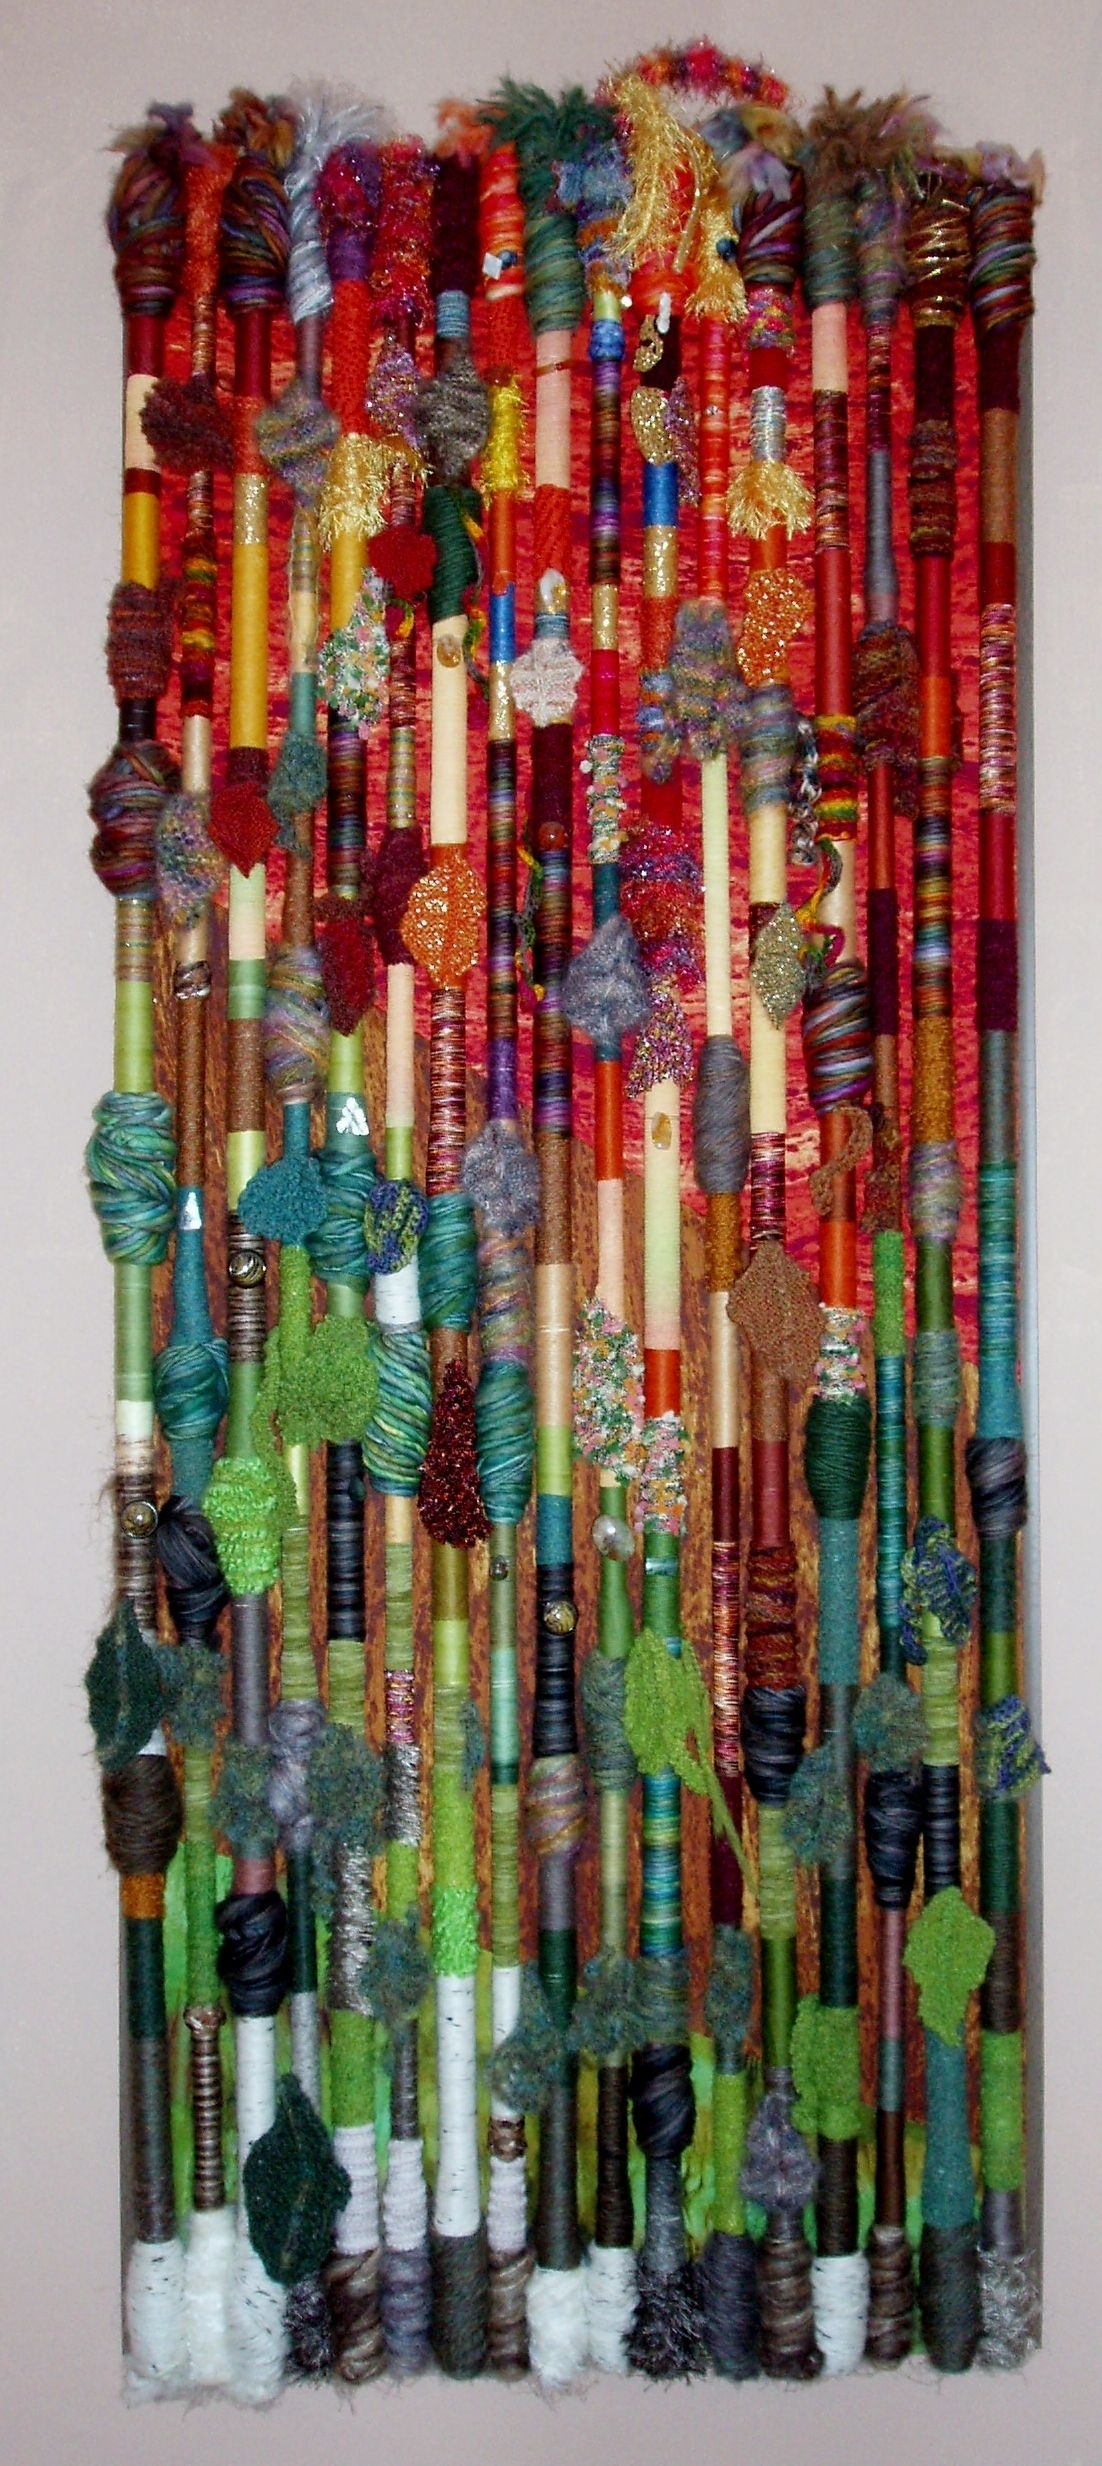 Fiber Art Wall Hanging - Fall In The Northland. Madepolly within 2017 Fabric Art Wall Hangings